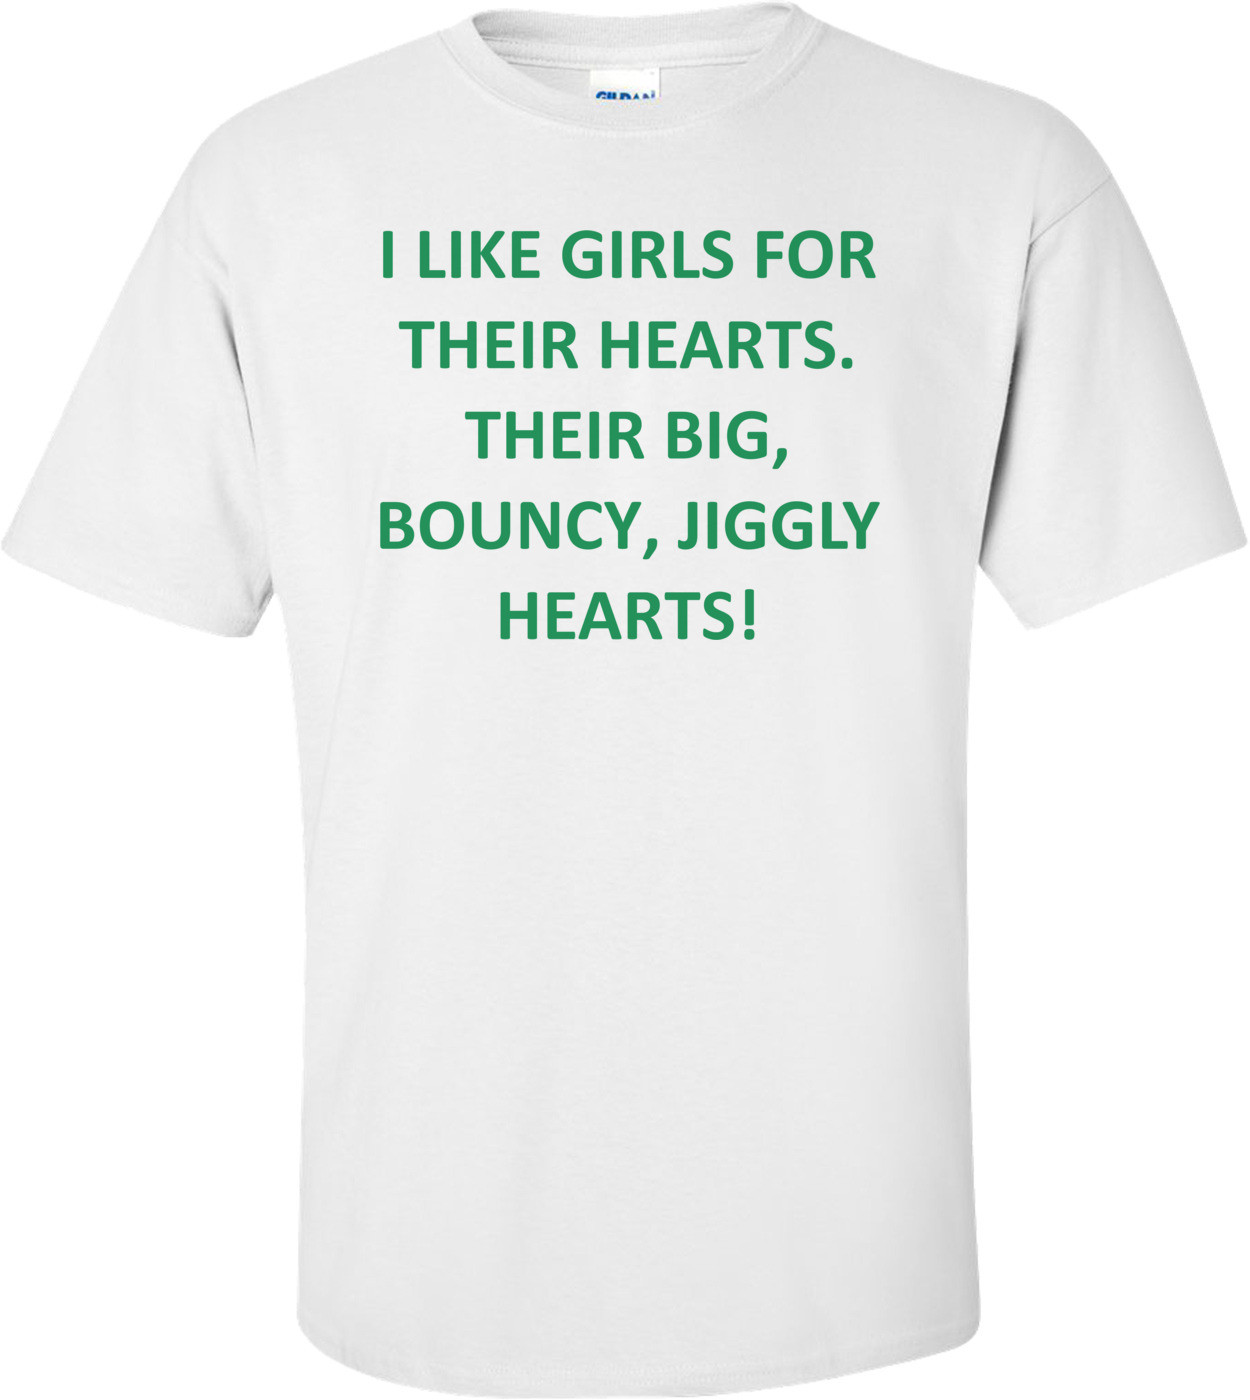 I LIKE GIRLS FOR THEIR HEARTS. THEIR BIG, BOUNCY, JIGGLY HEARTS! Shirt